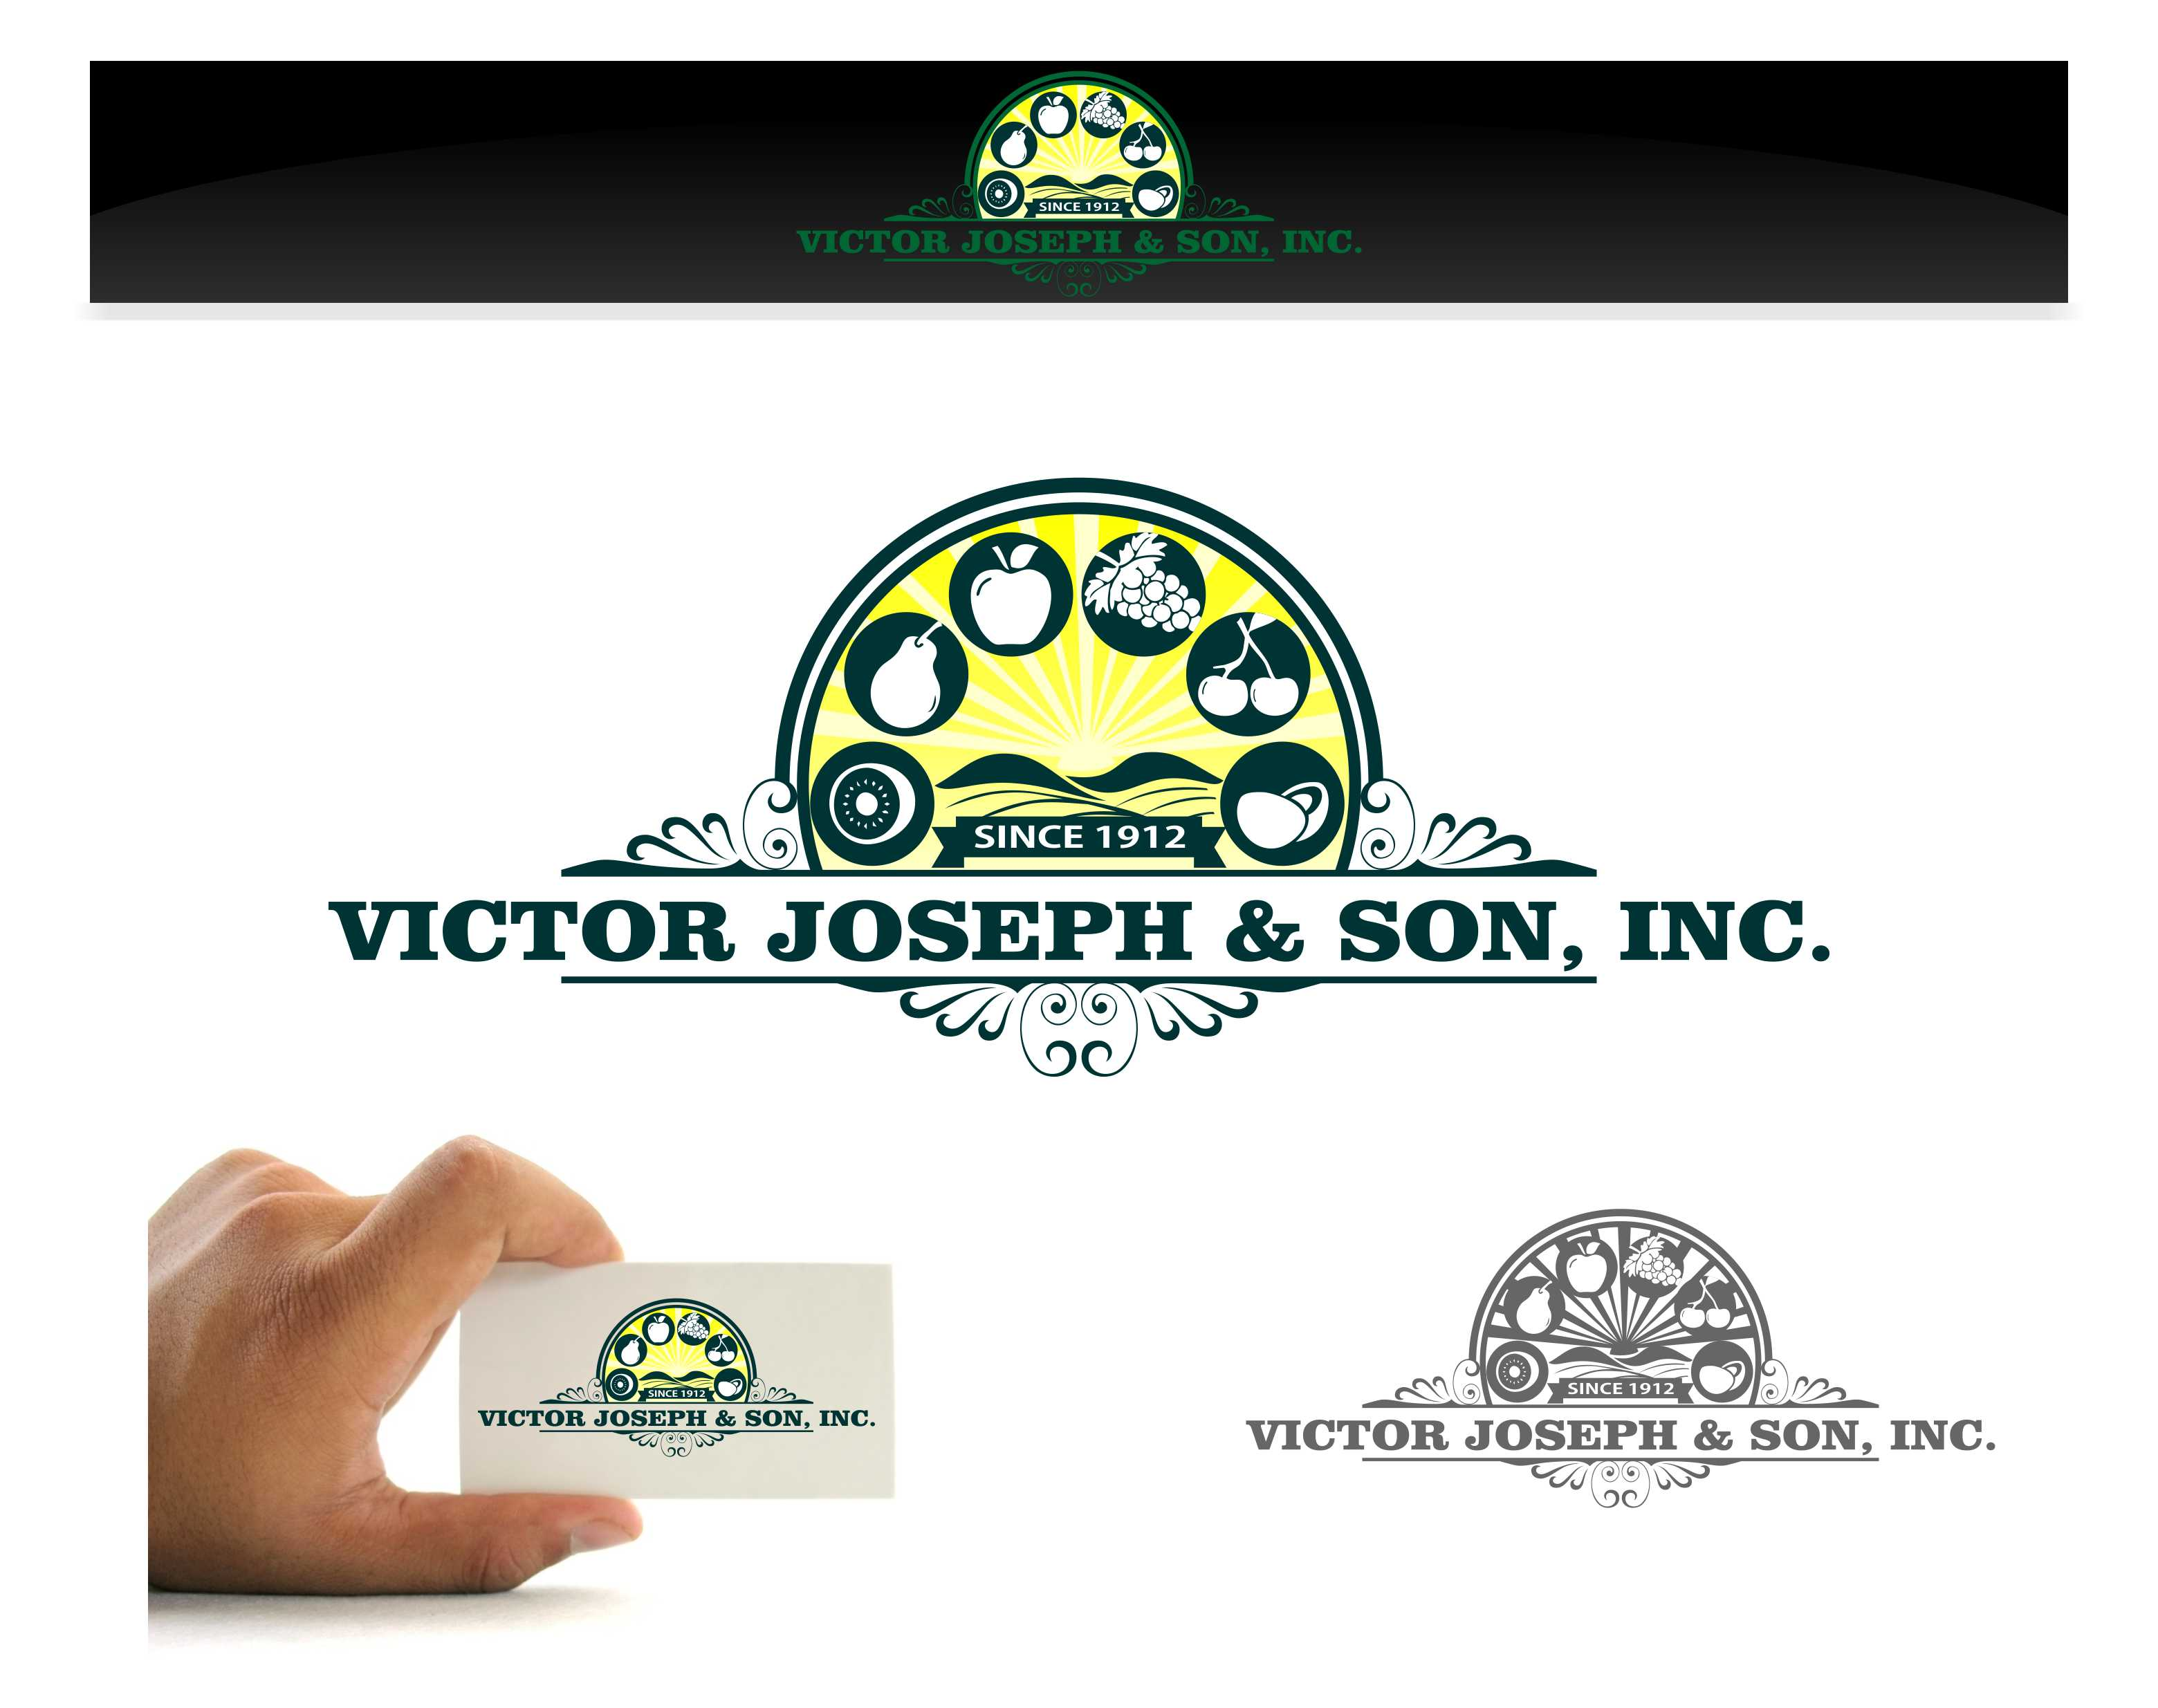 Logo Design by joca - Entry No. 122 in the Logo Design Contest Imaginative Logo Design for Victor Joseph & Son, Inc..